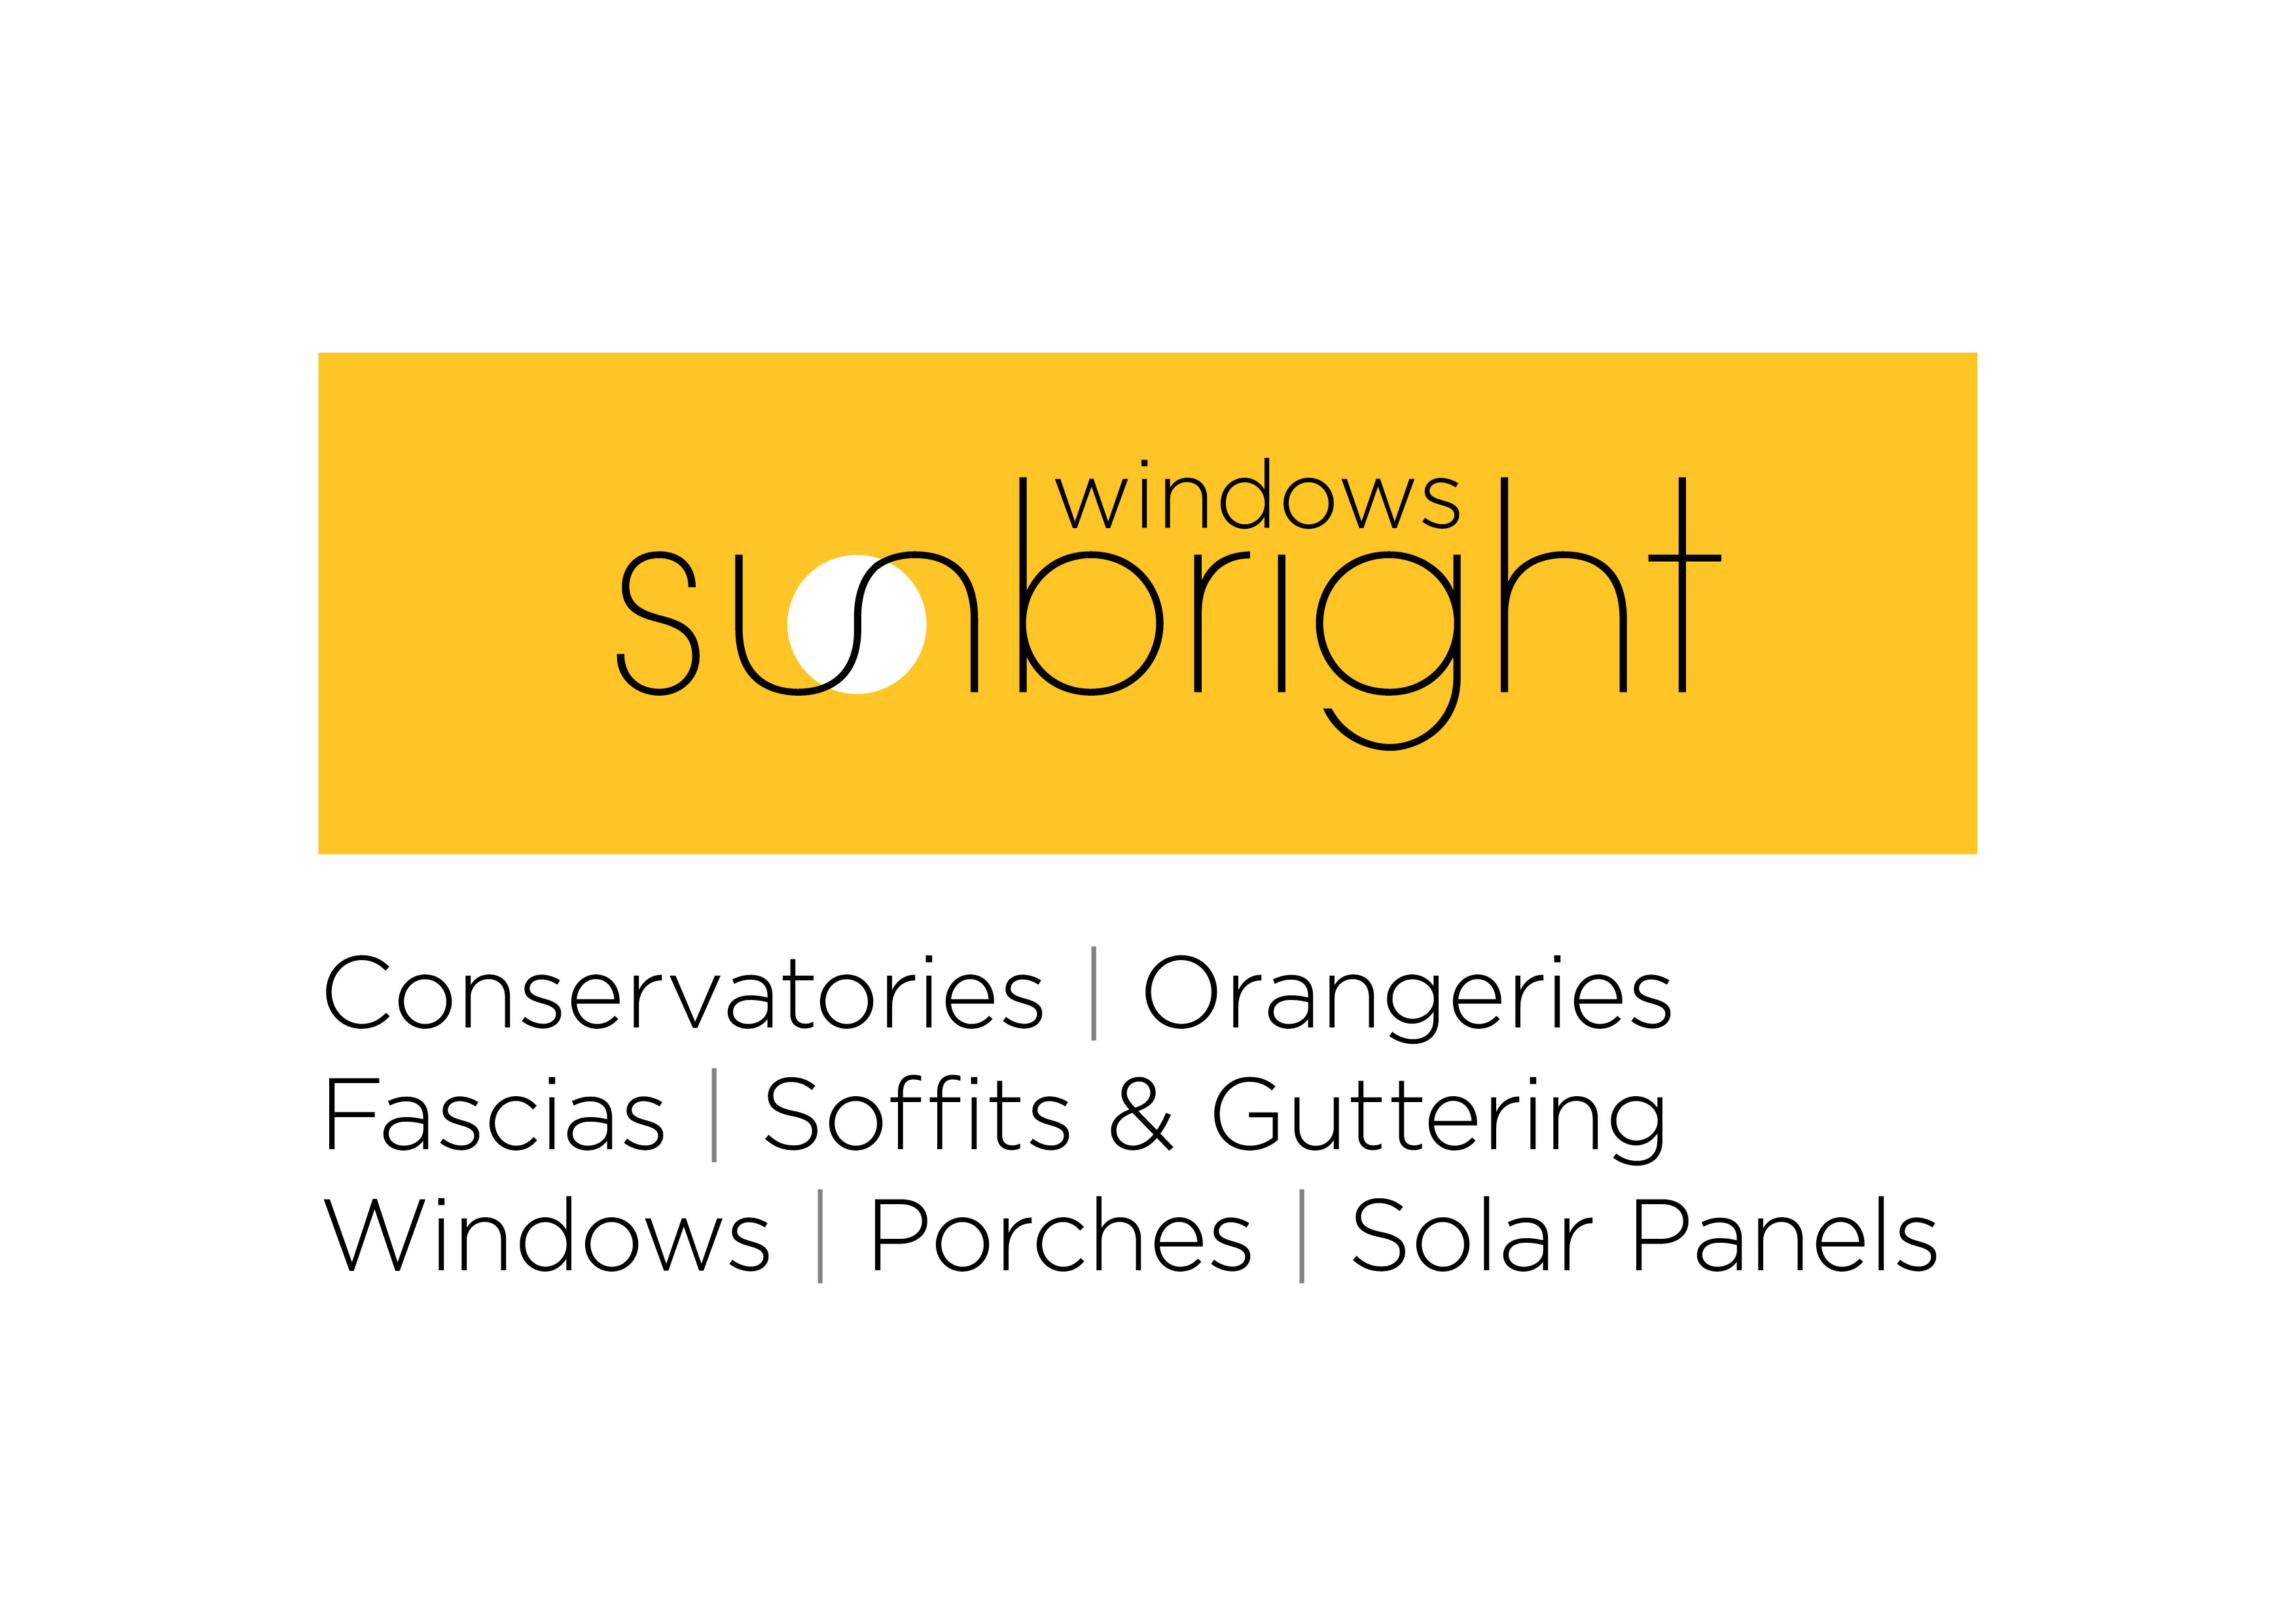 Sunbright windows.jpg